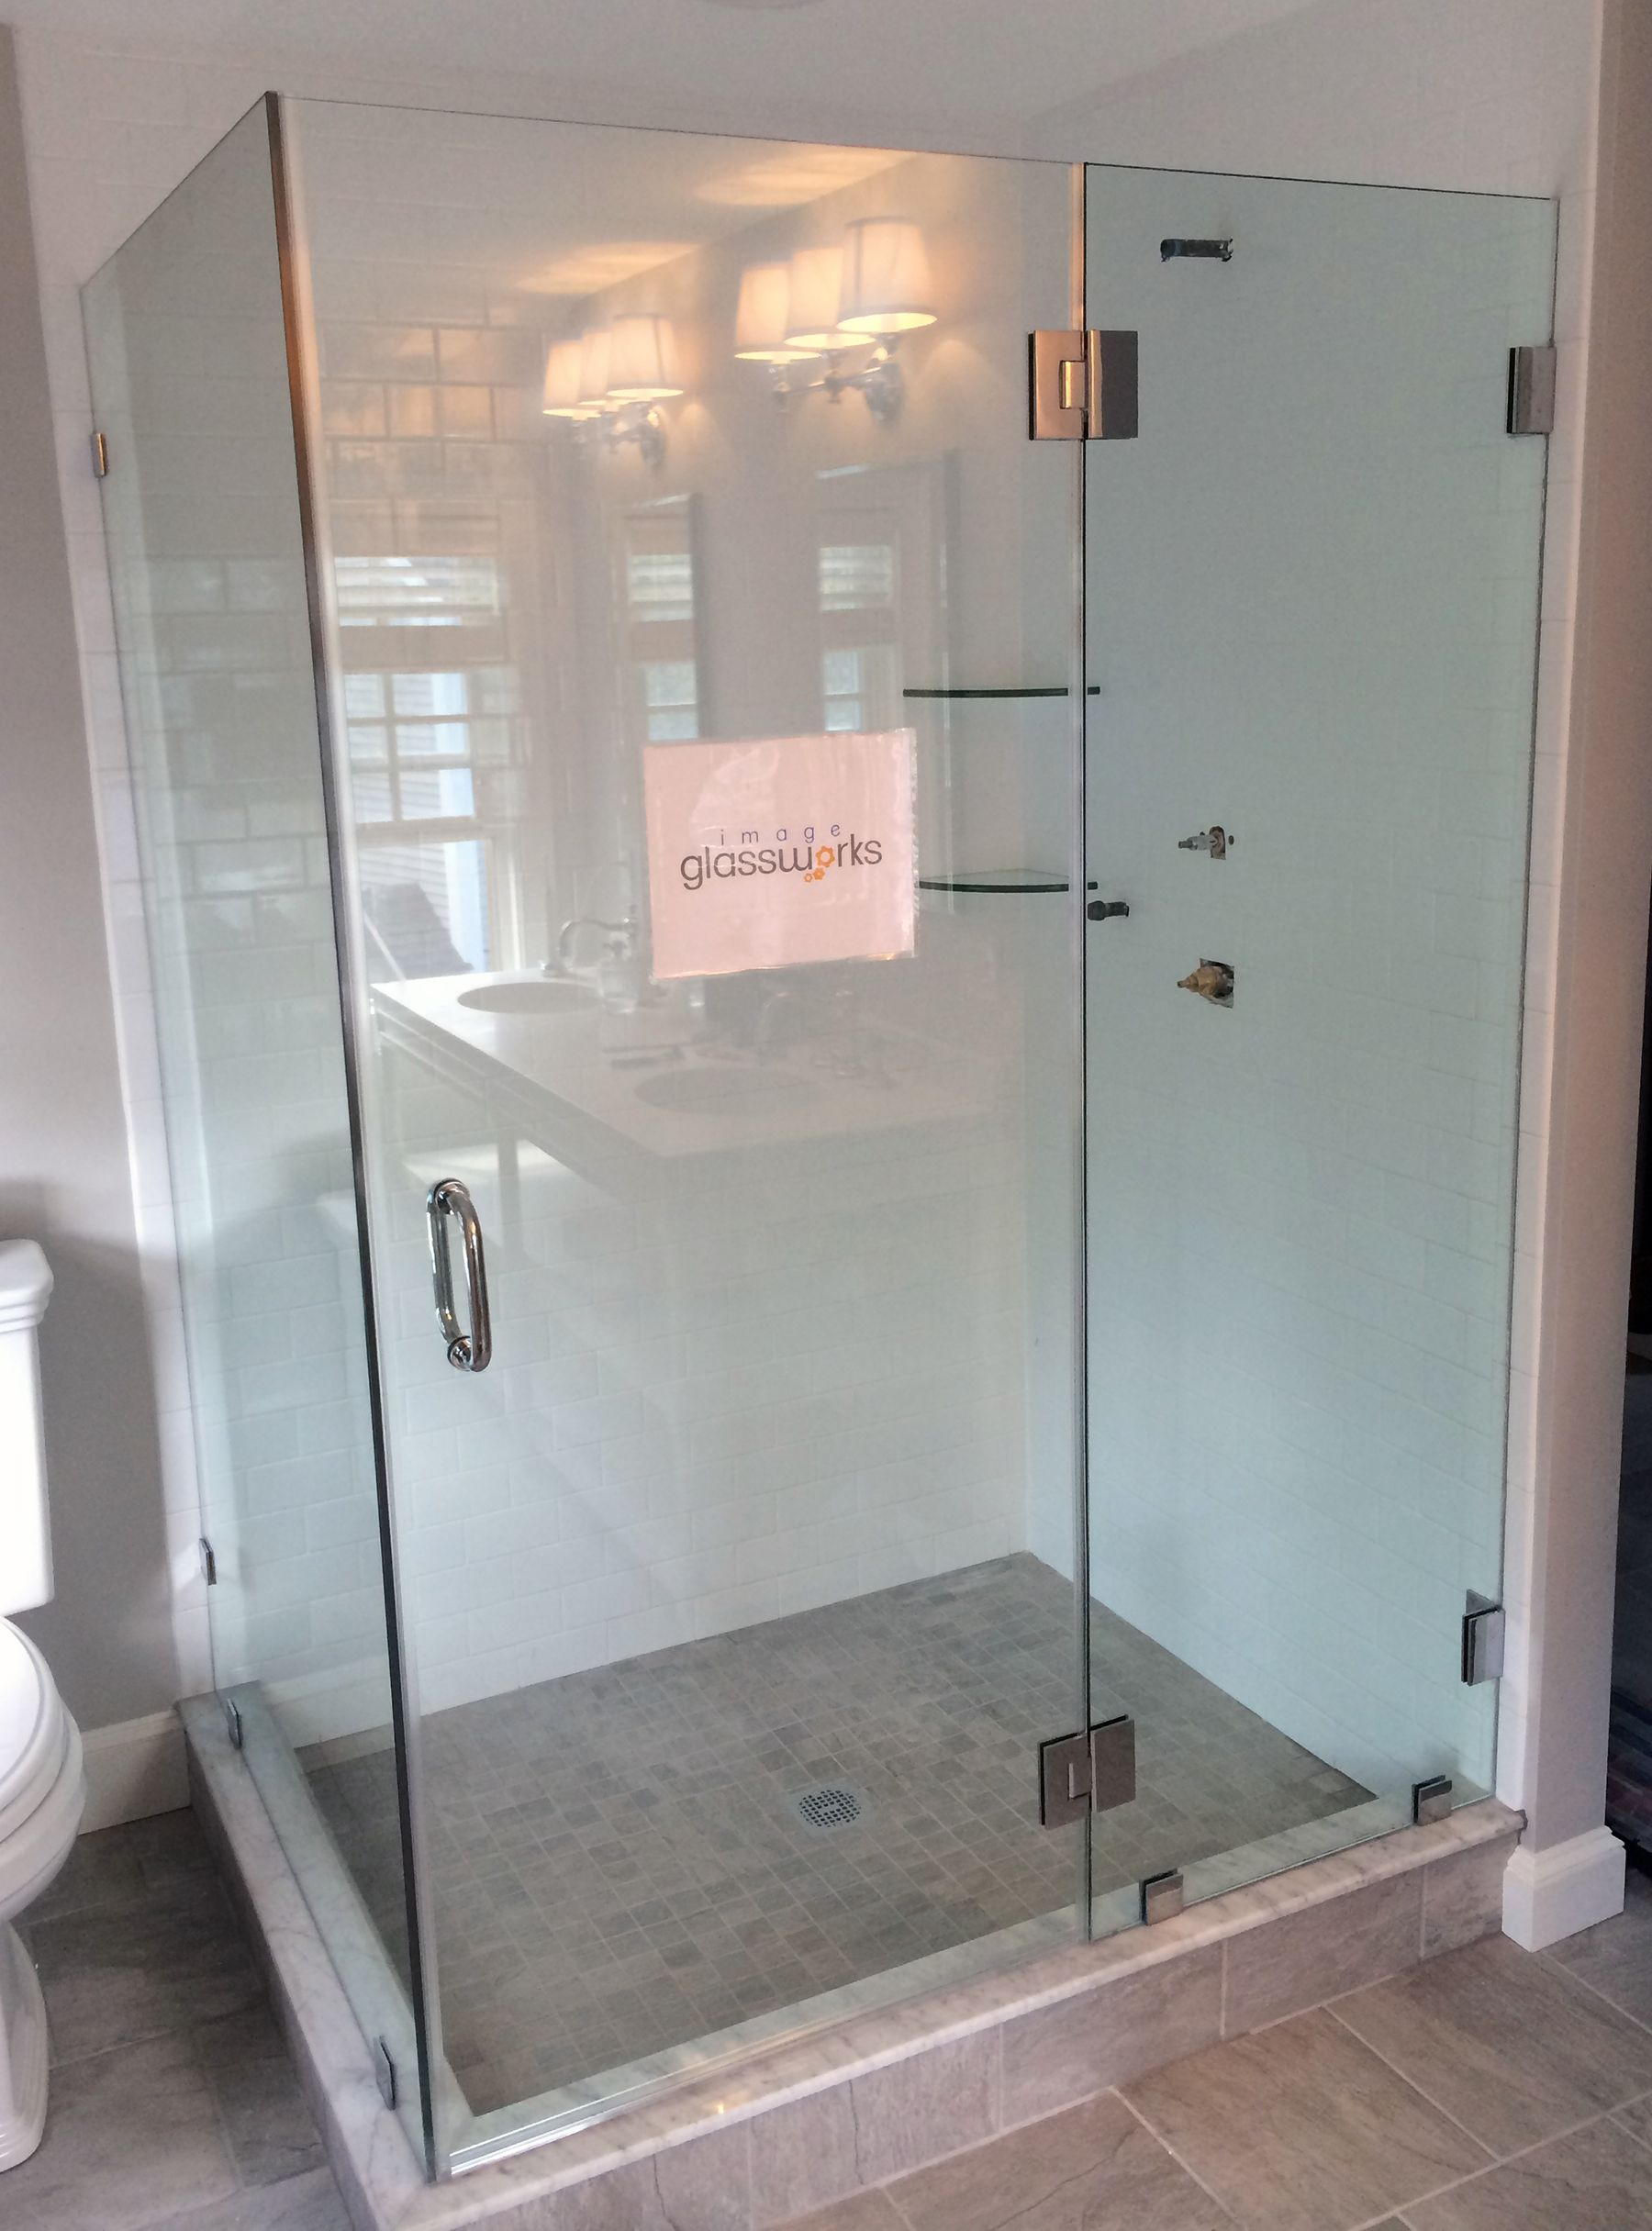 A Frameless Swinging Shower Door Hinged From The Stationary Panel Which Closes Against A La Glass Shower Door Hinge Frameless Shower Doors Swinging Shower Door